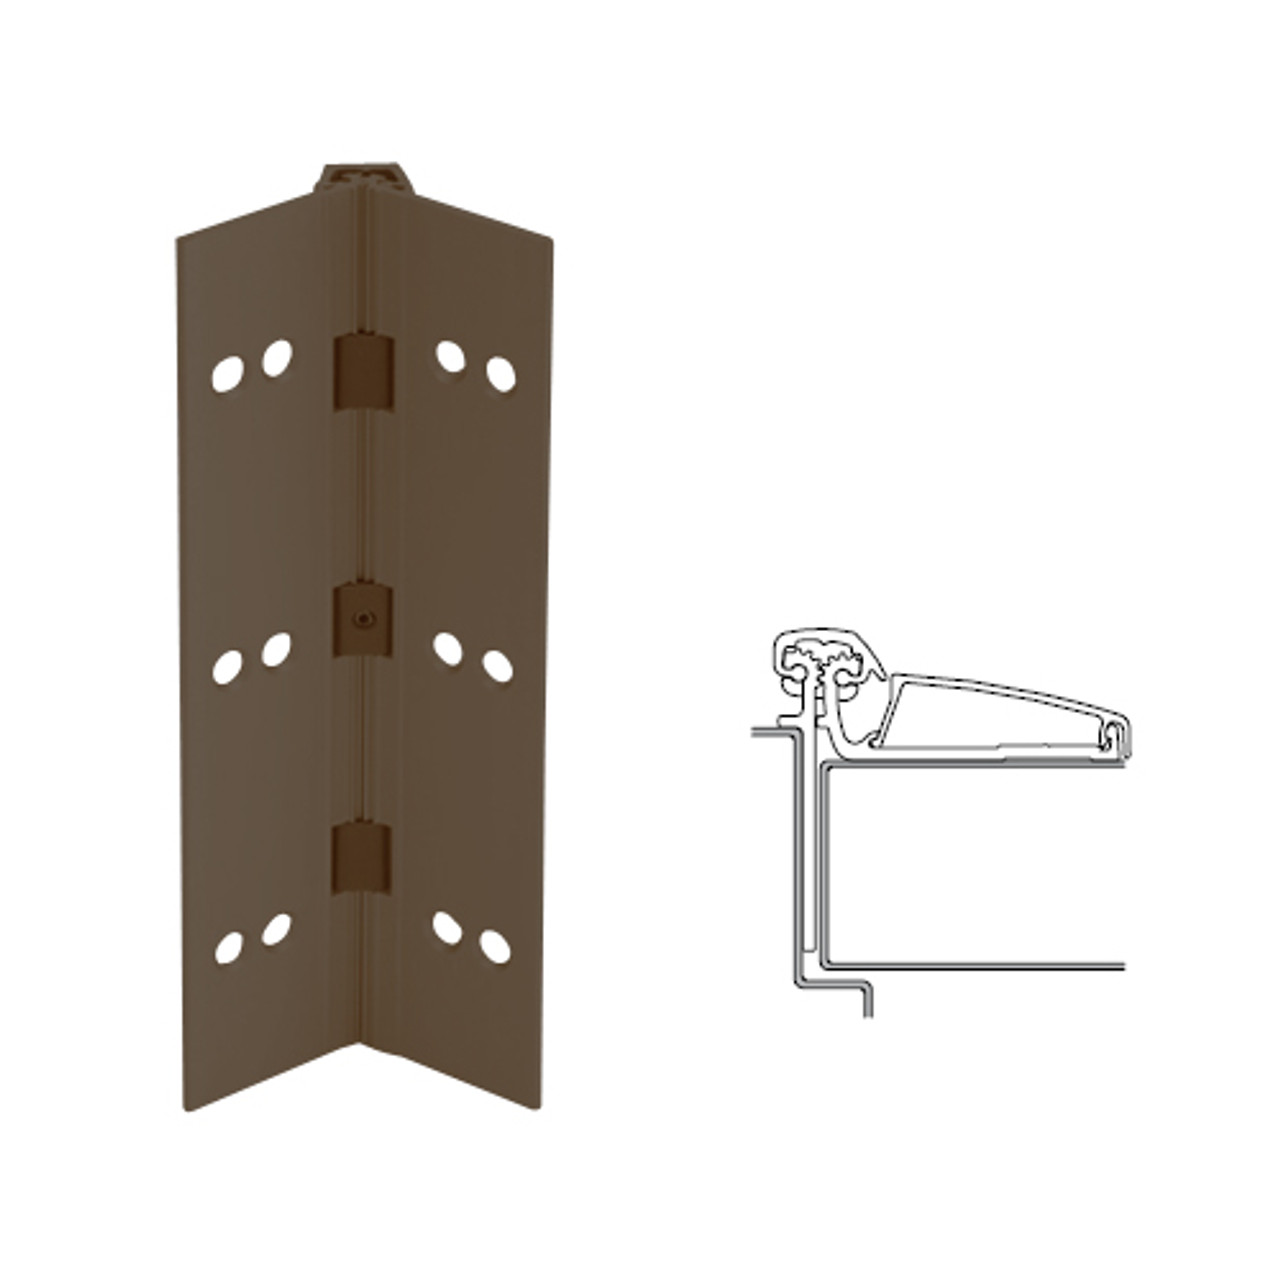 046XY-313AN-95-WD IVES Adjustable Half Surface Continuous Geared Hinges with Wood Screws in Dark Bronze Anodized